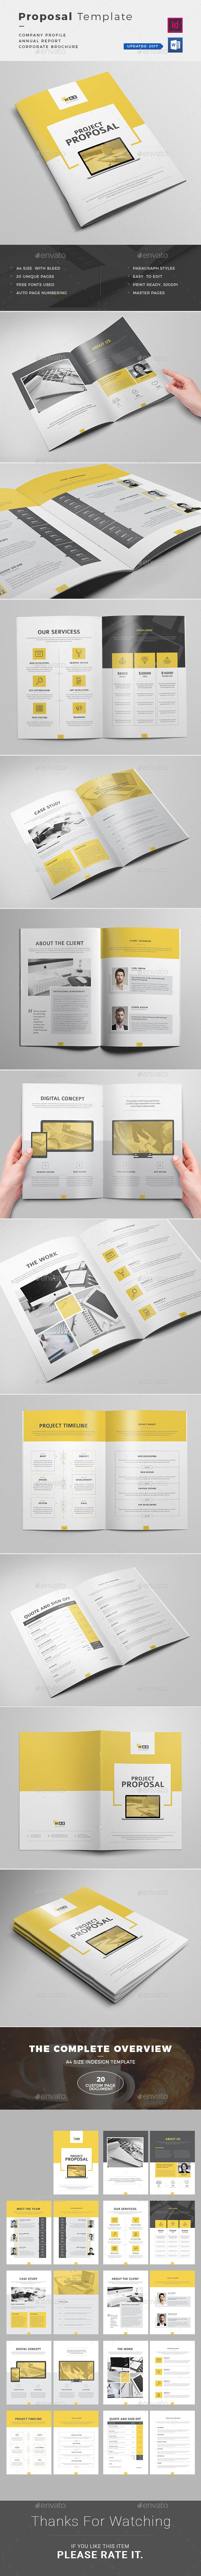 #Proposal Word - Proposals & #Invoices Stationery Download here:  https://graphicriver.net/item/proposal-template/14542724?ref=alena994